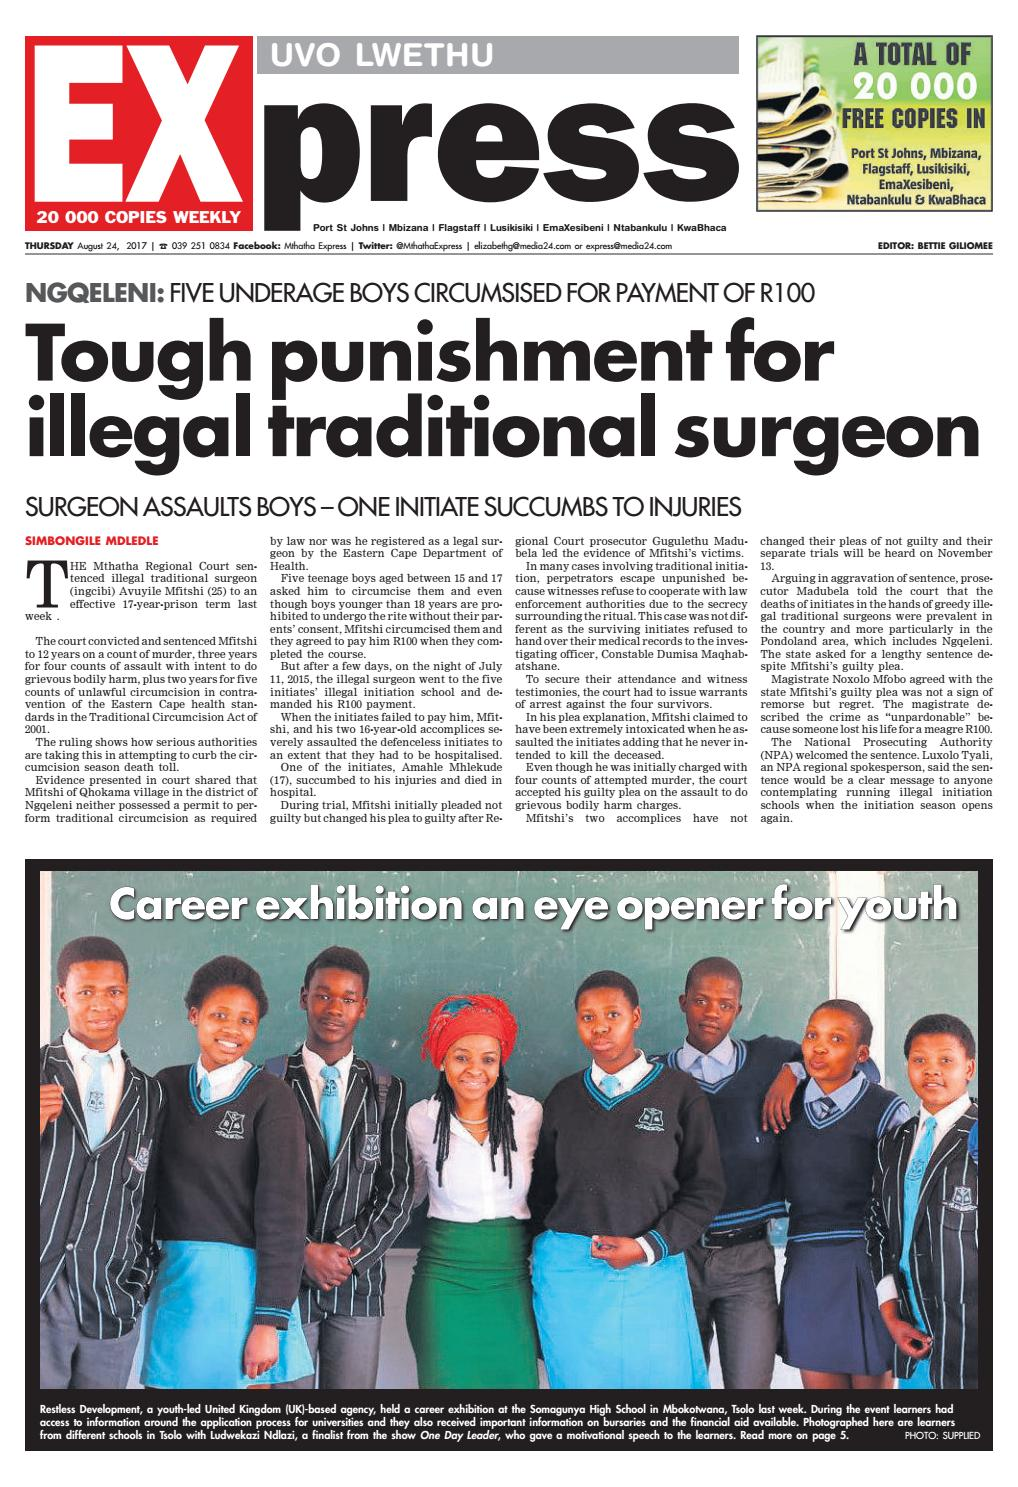 Uvolwethu express 24 august 2017 by Mthatha Express - issuu